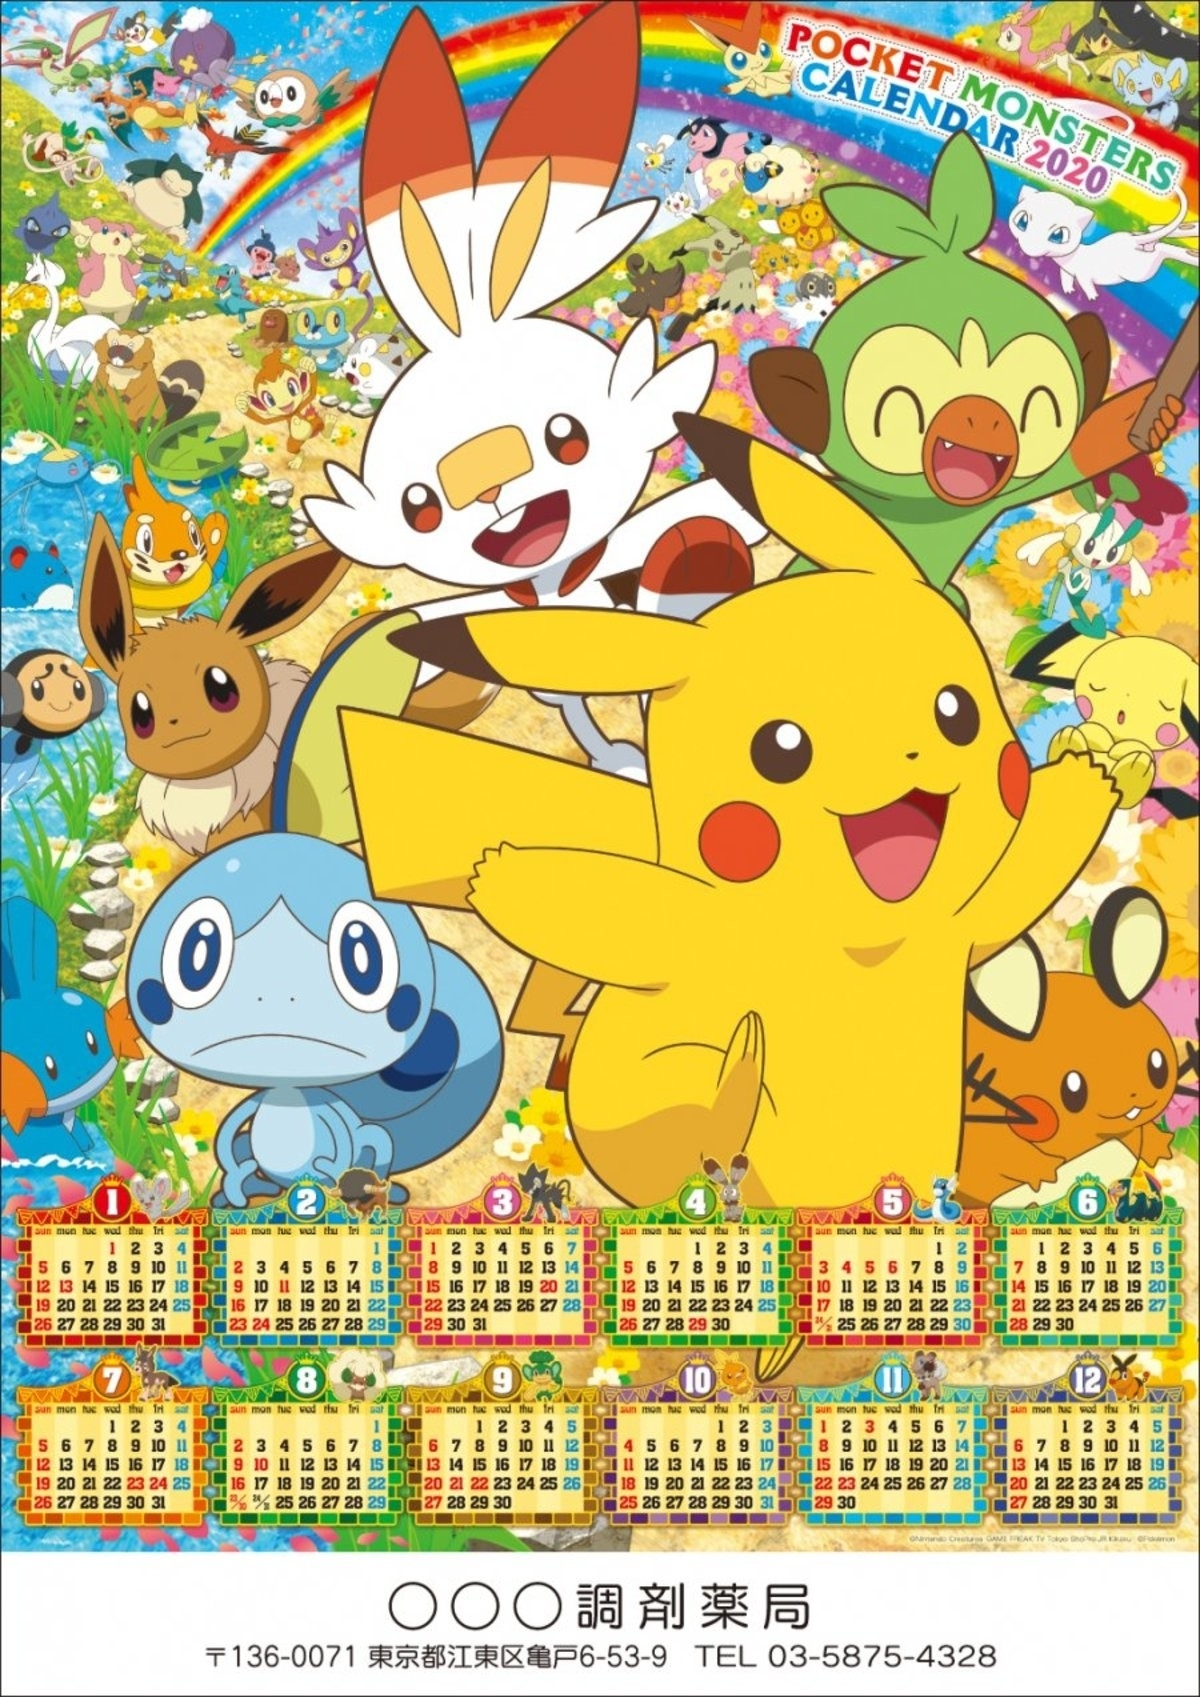 Official 2020 Pokemon Calendar